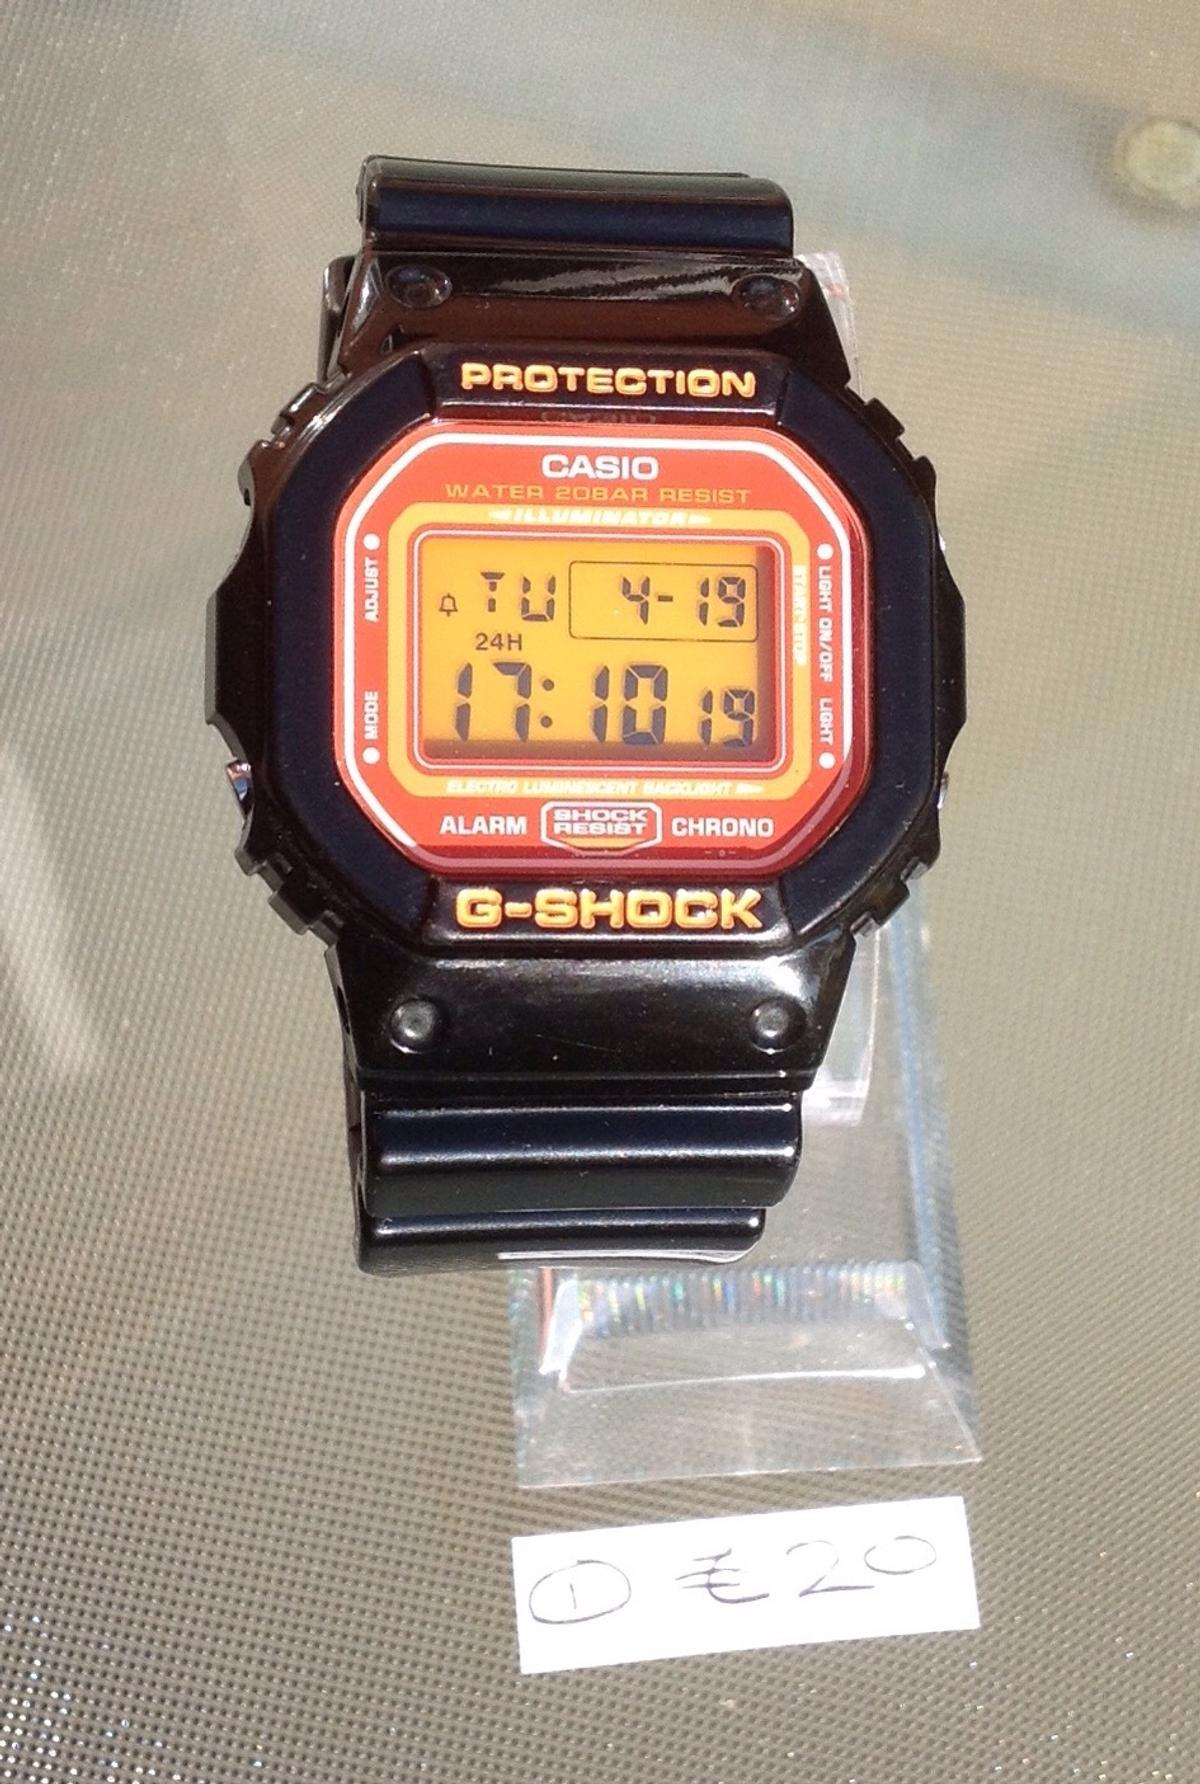 719feac83a5 Casio G-Shock DW-5600CS-1 in Warwick for £20.00 for sale - Shpock